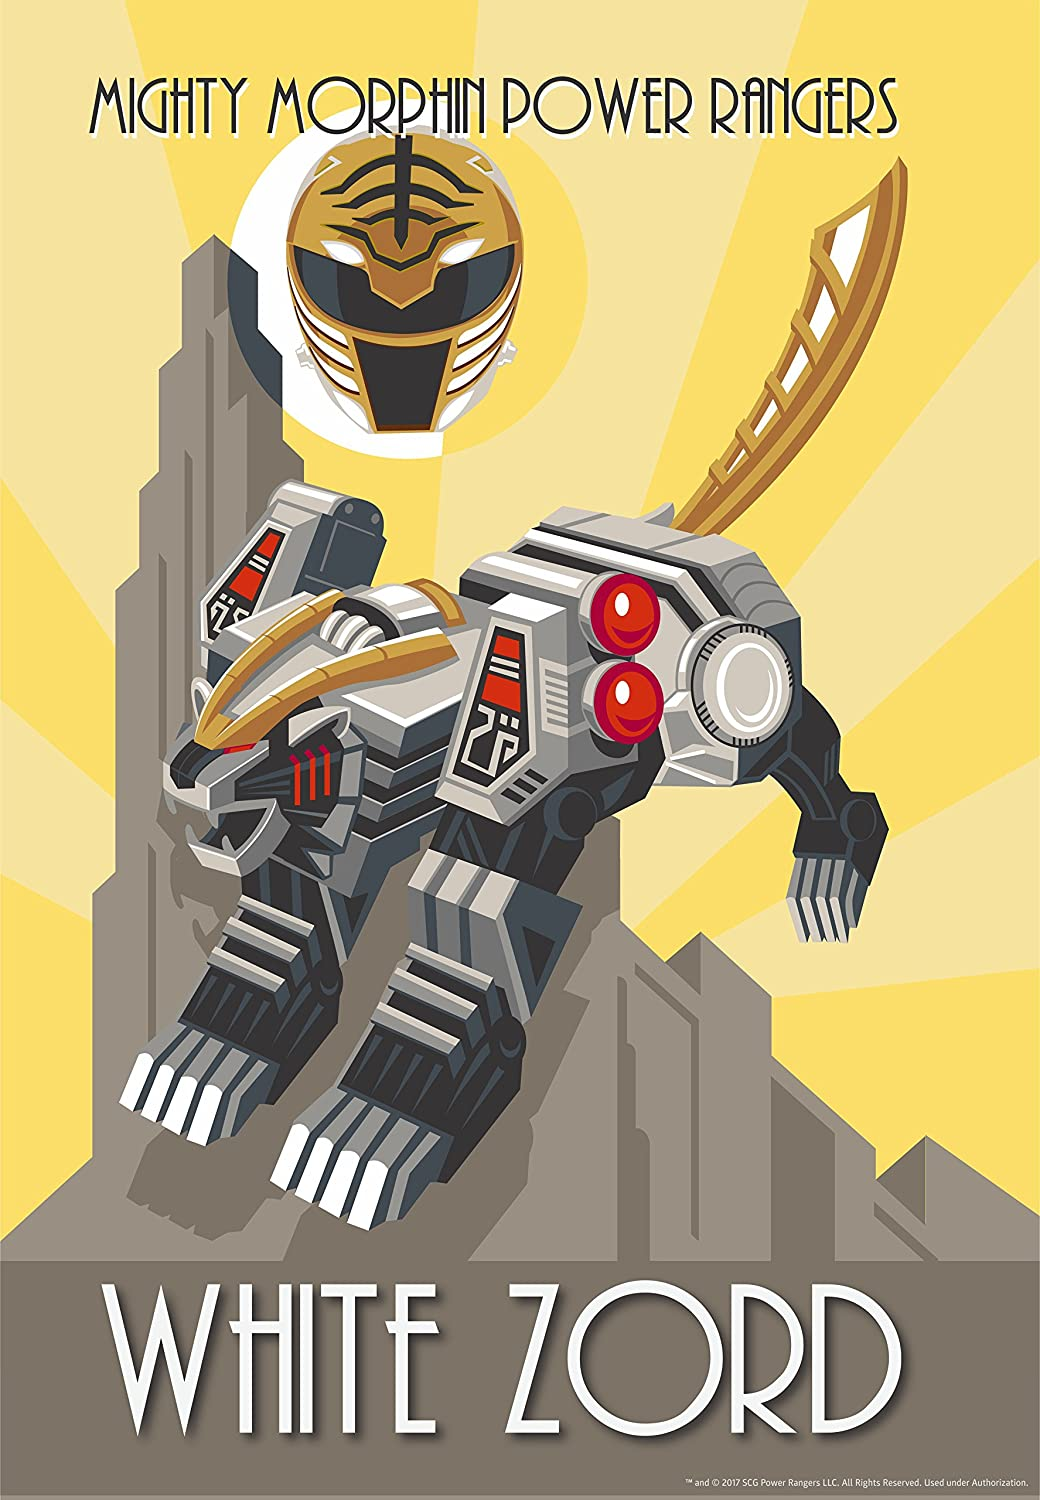 Amazon.com: Mighty Morphin Power Rangers Megazord Poster Wall Decal ...